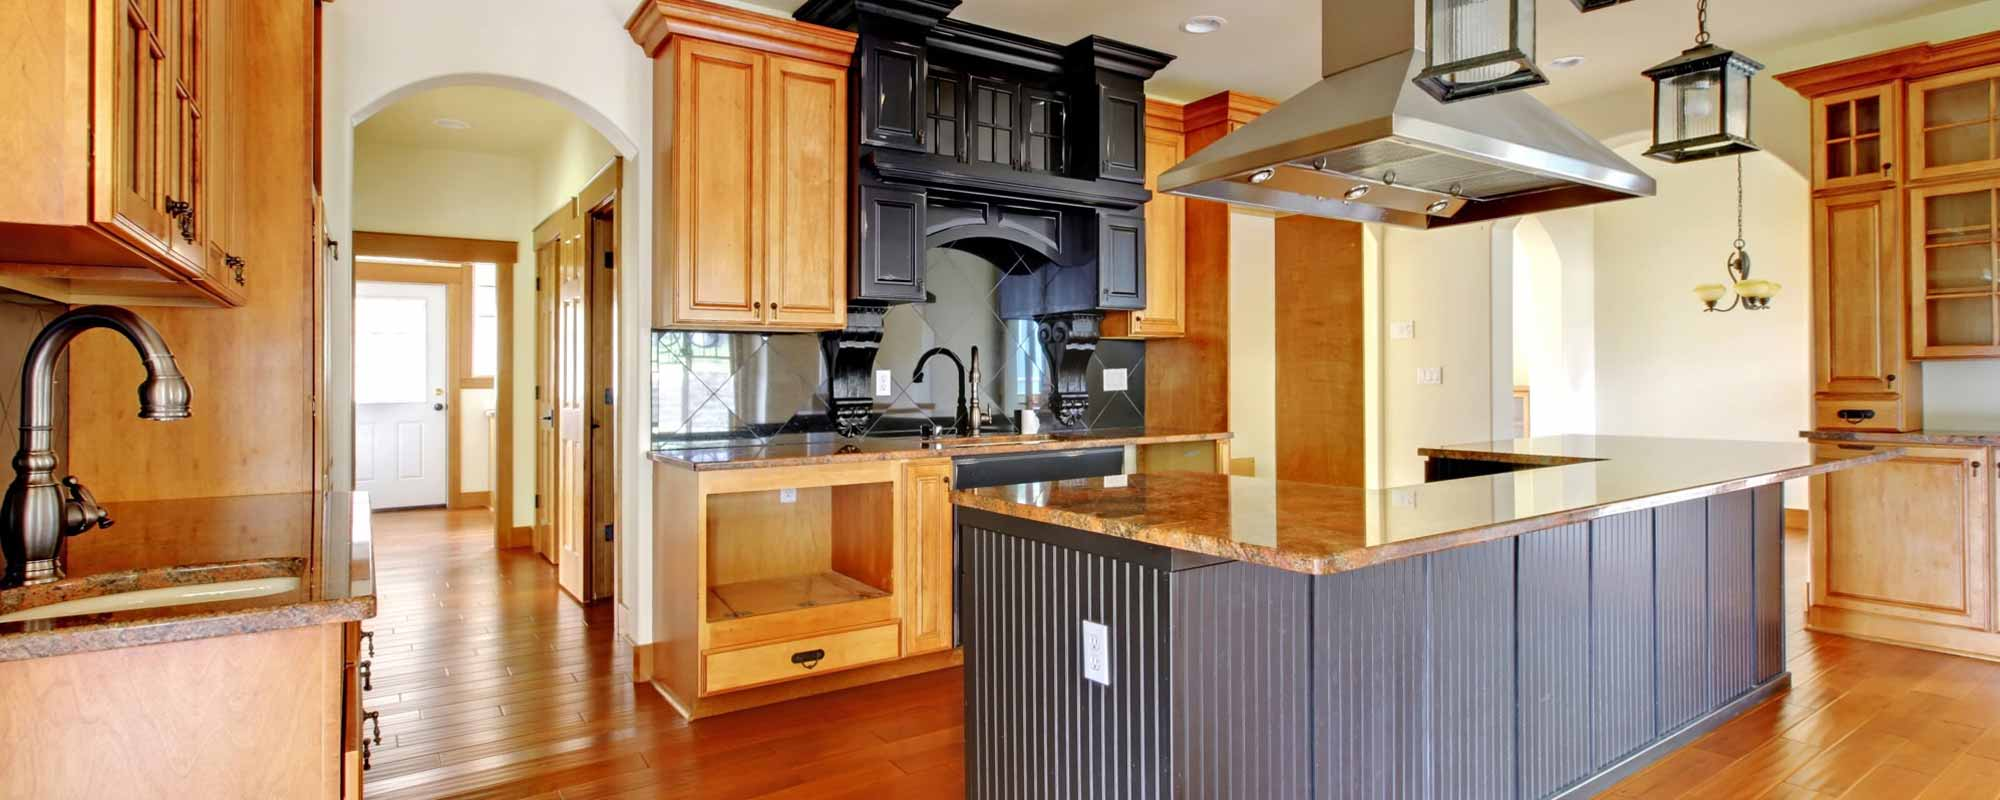 East Rockford Kitchen Remodeling